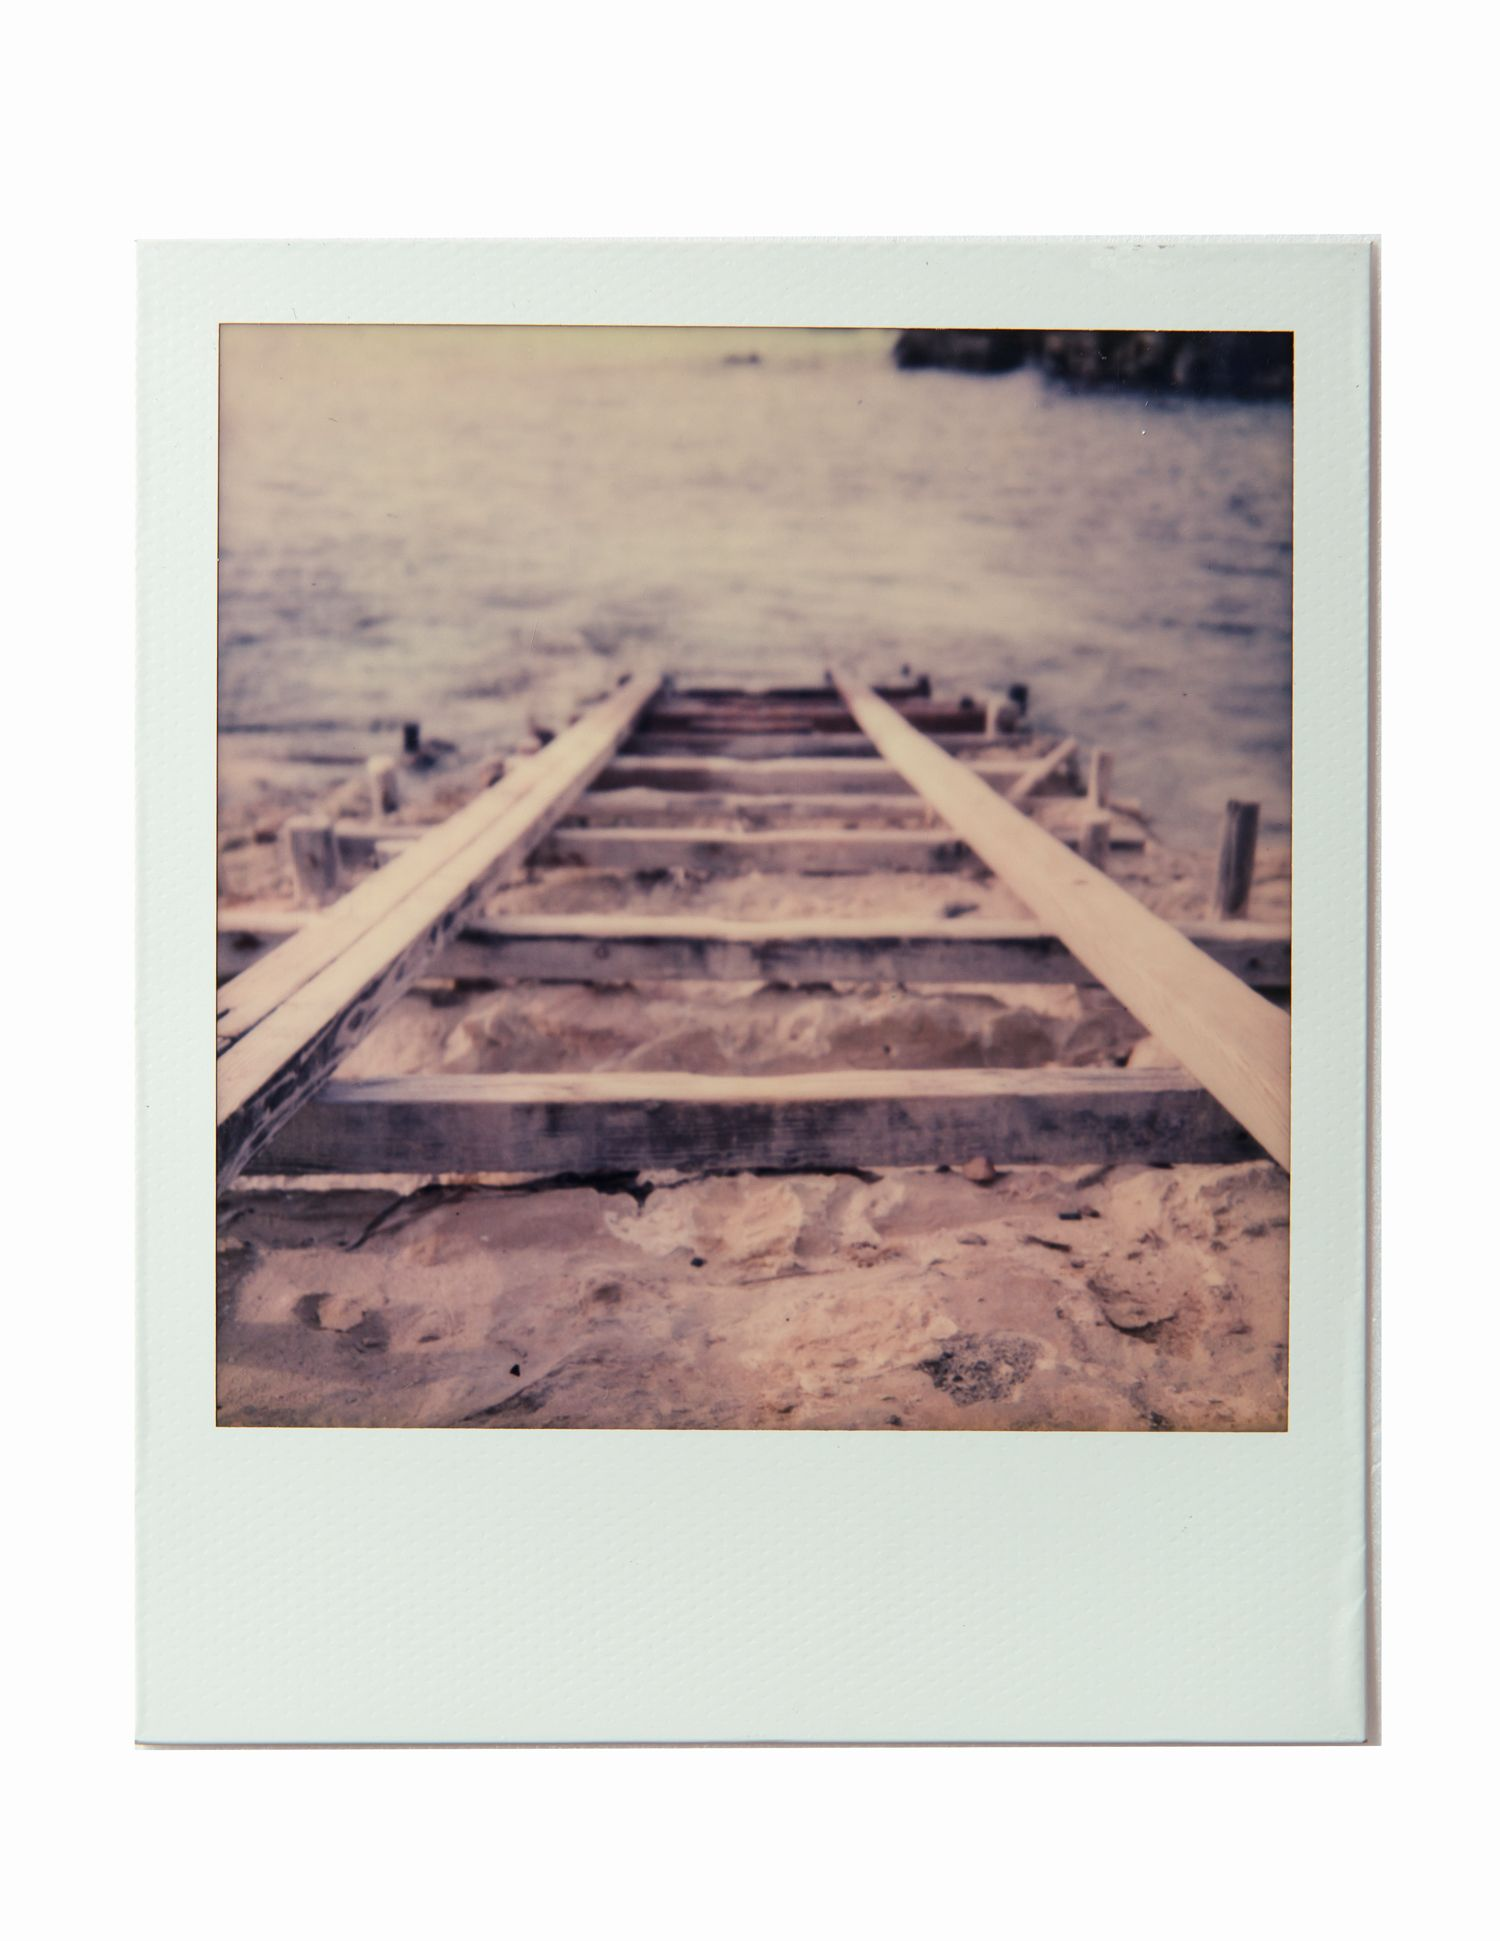 FOMENTERA - 2015 -  SX-70 POLAROID CAMERA WITH  IMPOSSIBLE PROJECT FILM - Photography by Pedro Loreto - www.pedroloreto.com